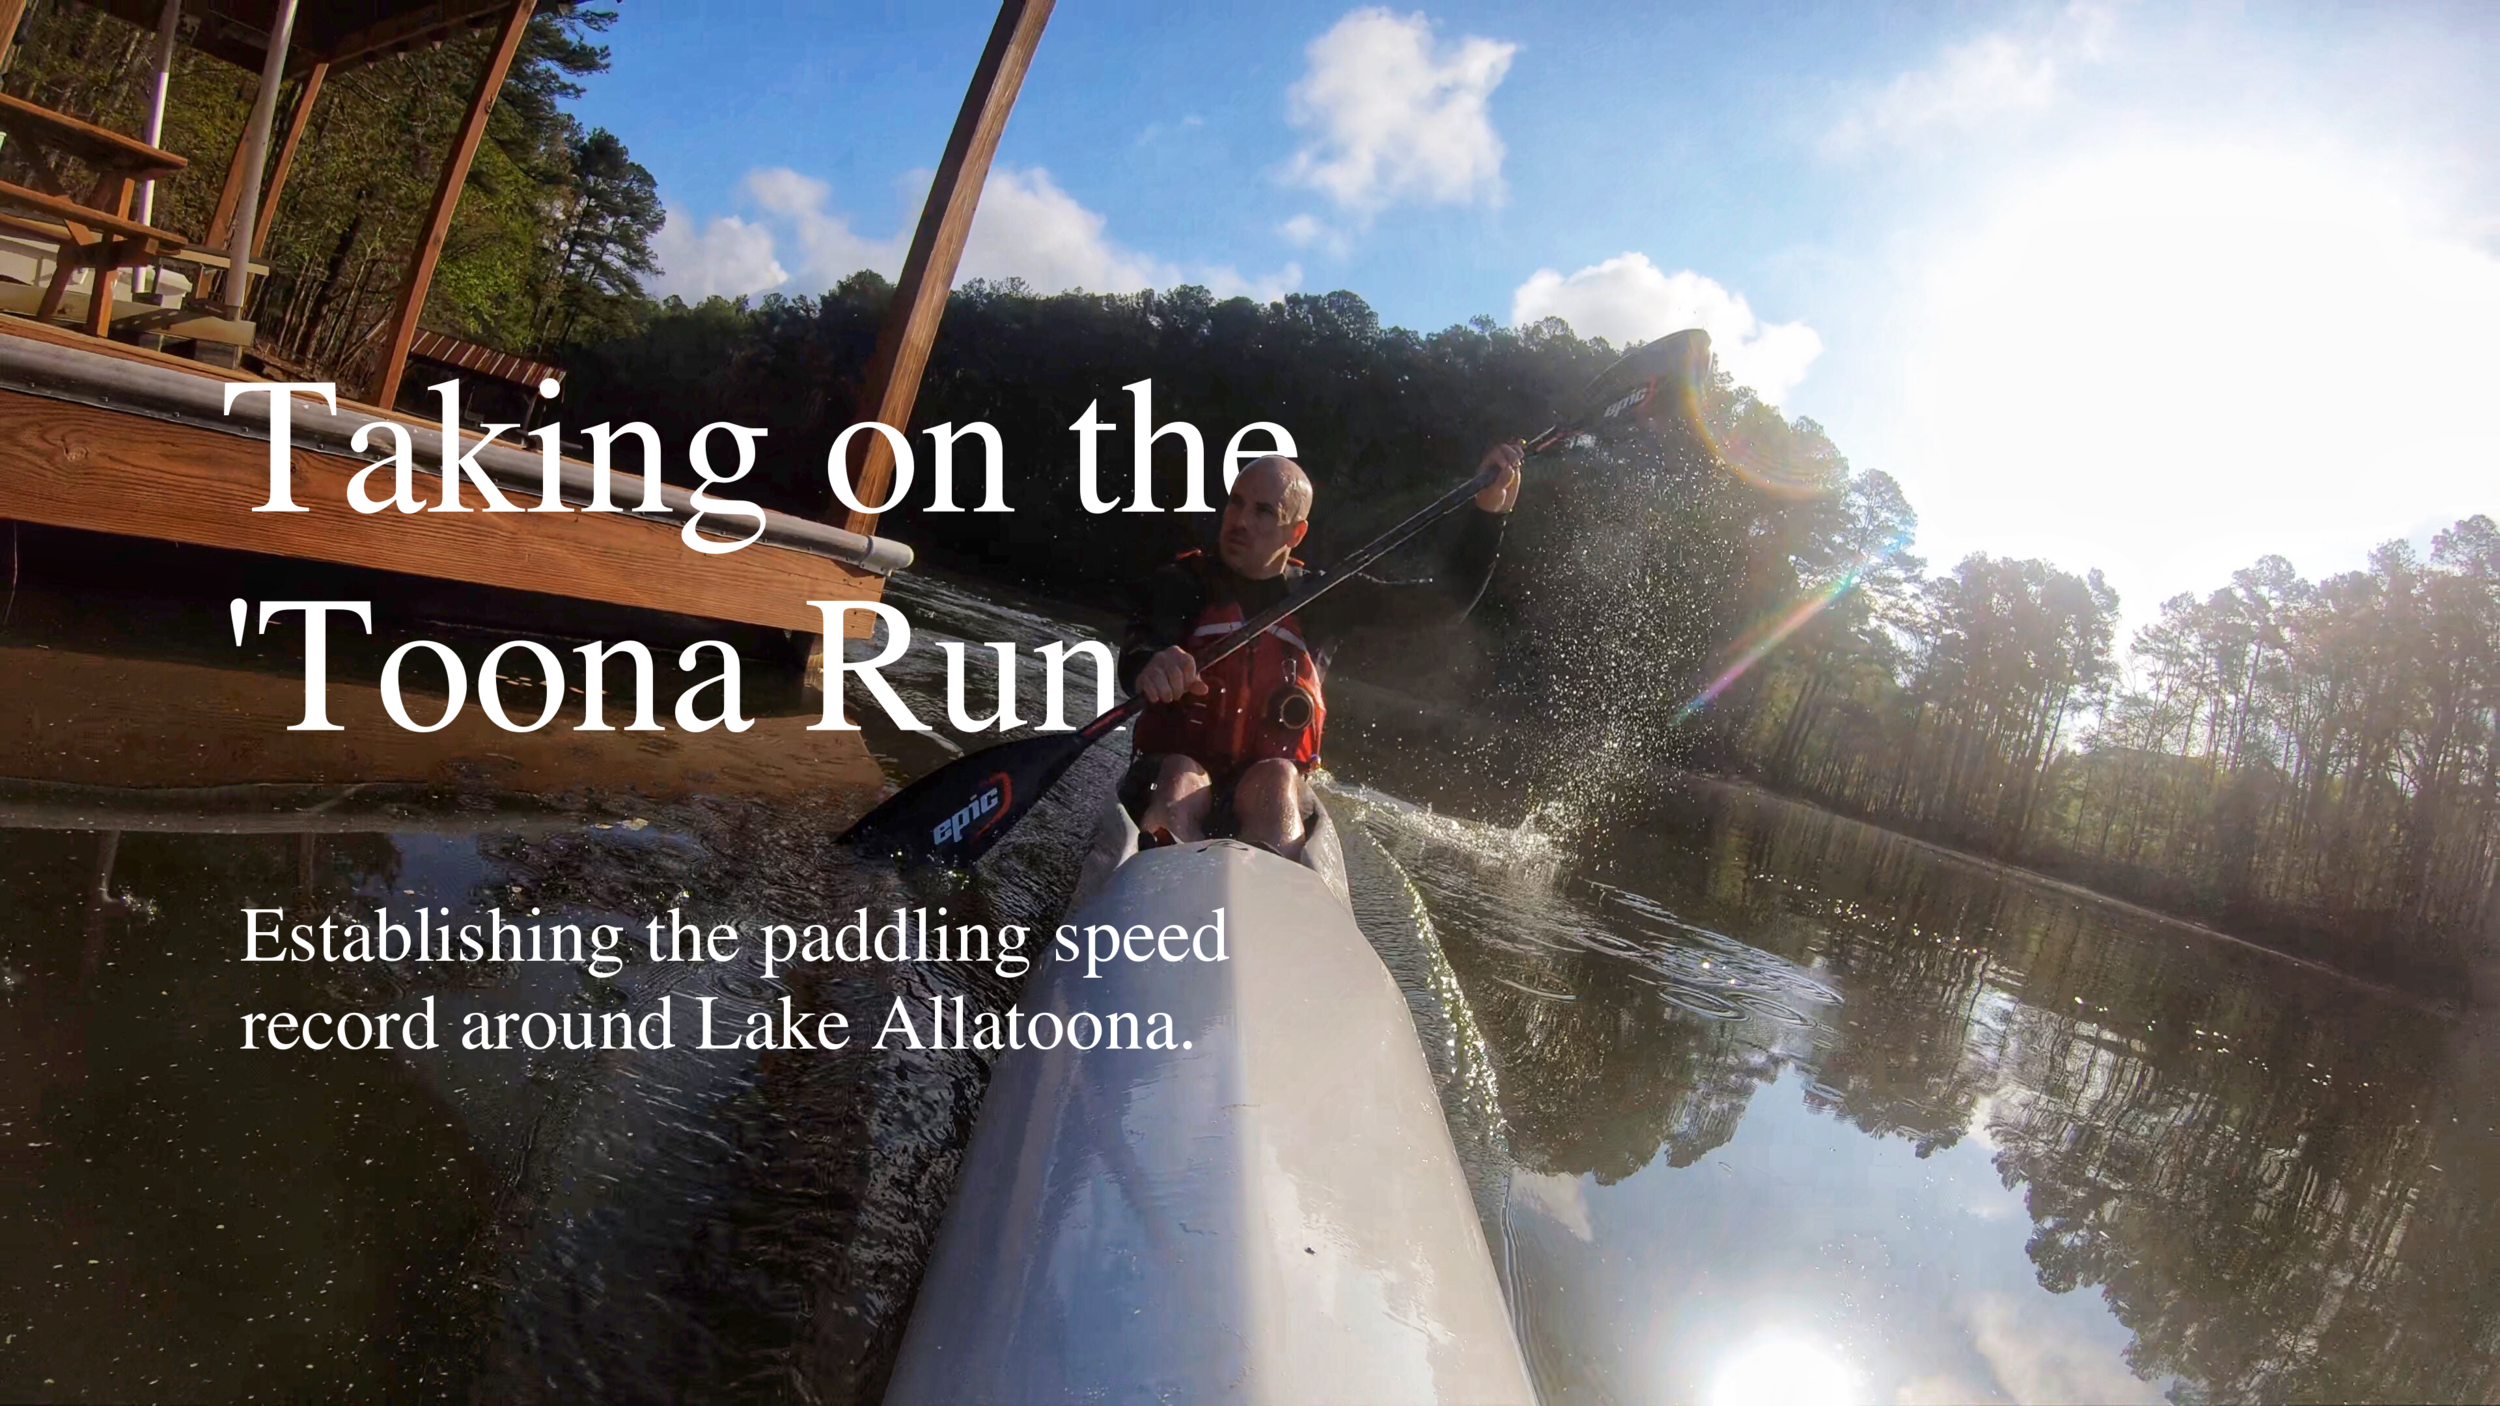 Taking on the 'Toona Run